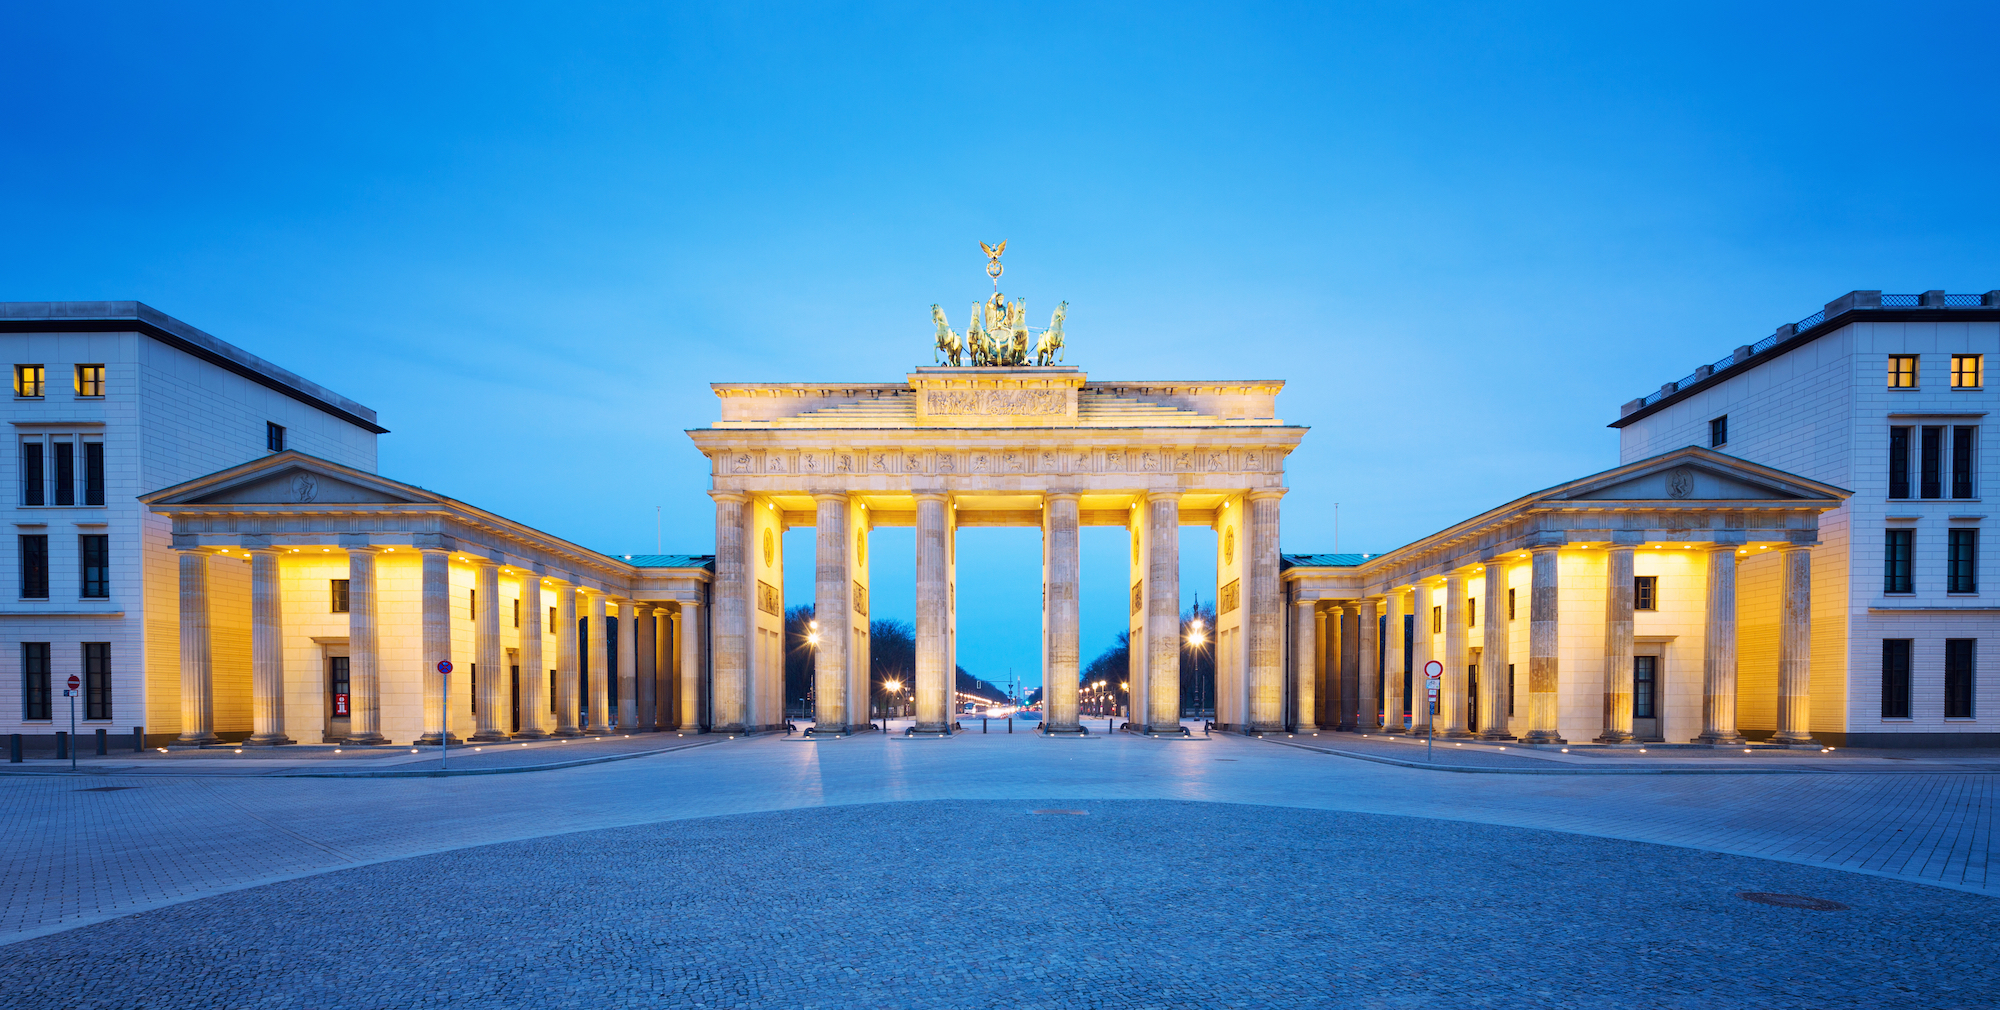 Experience history and explore the Brandenburger Tor and Berlin Wall